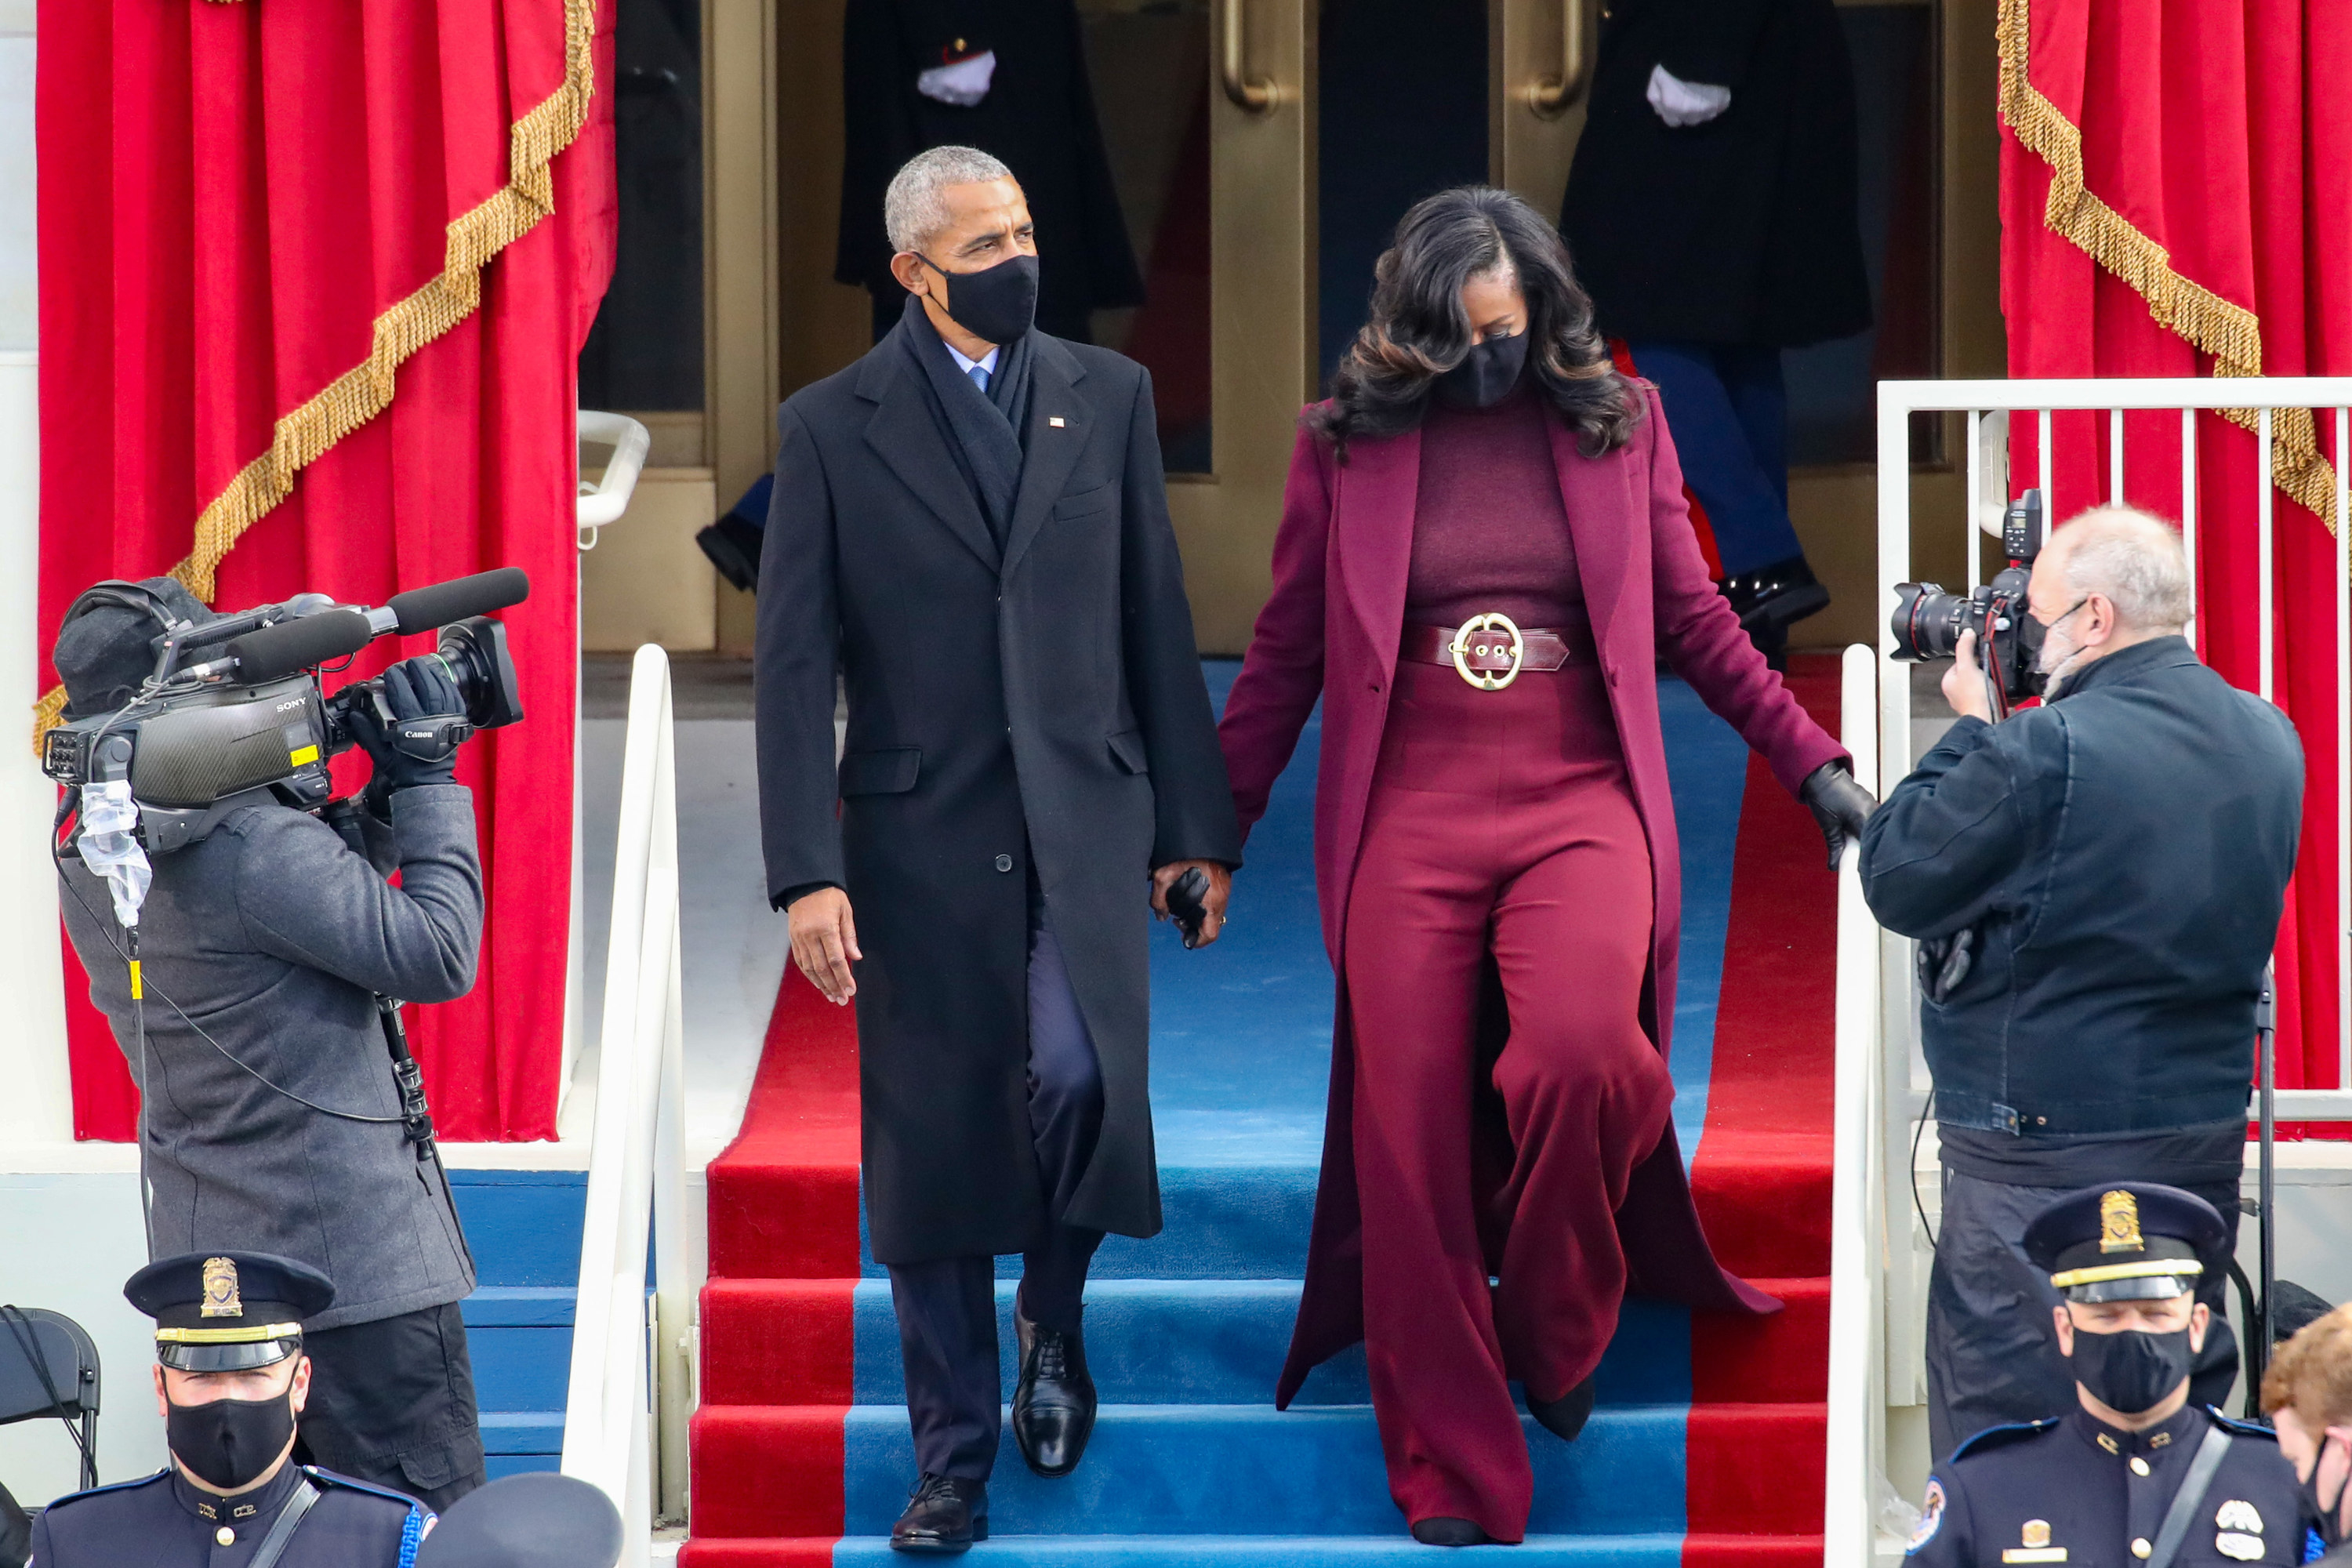 Barack and Michelle Obama descend stairs at President Joe Biden's inauguration